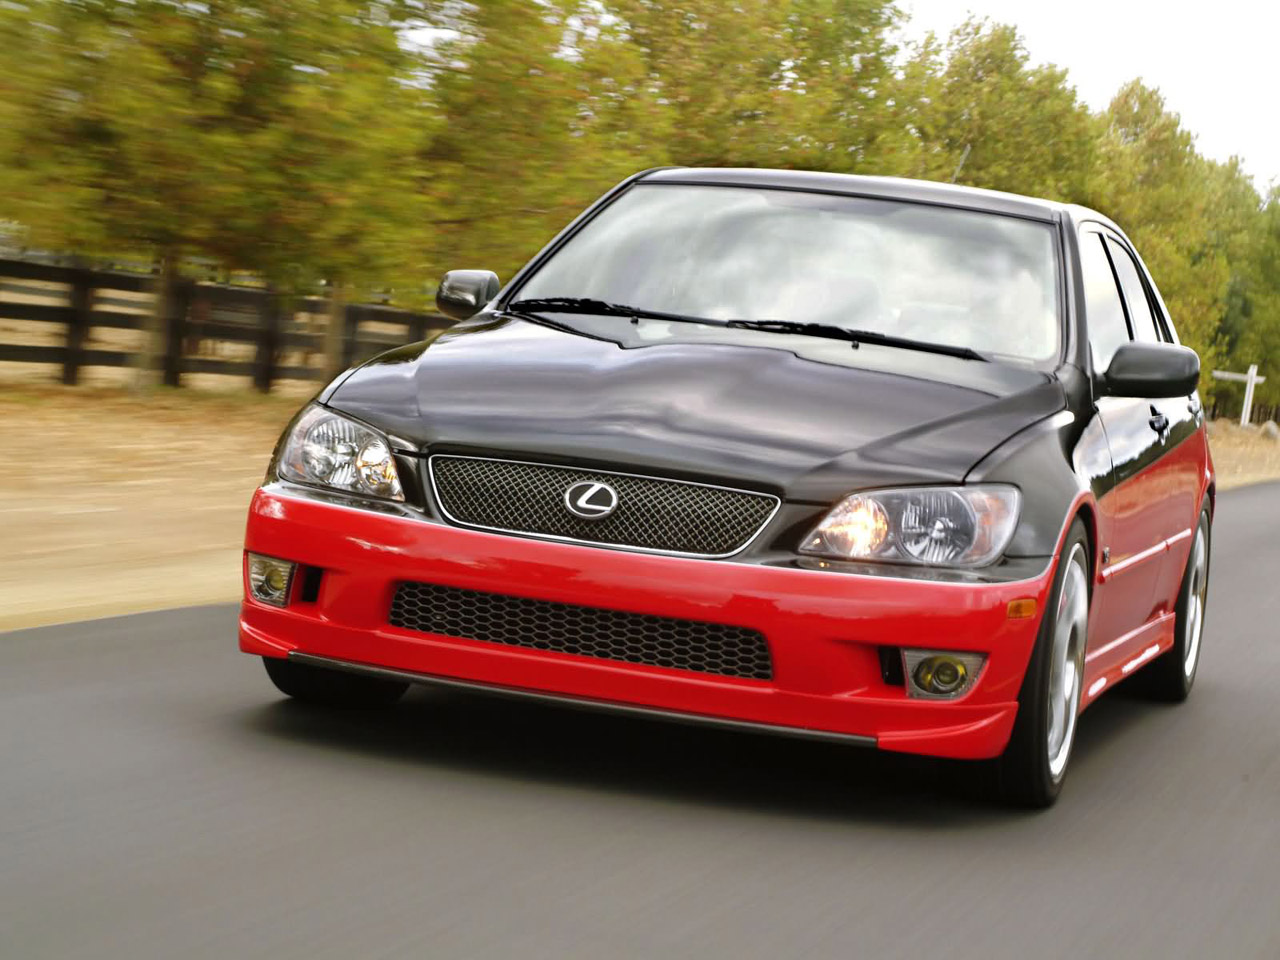 Lexus IS 430 in motion, front